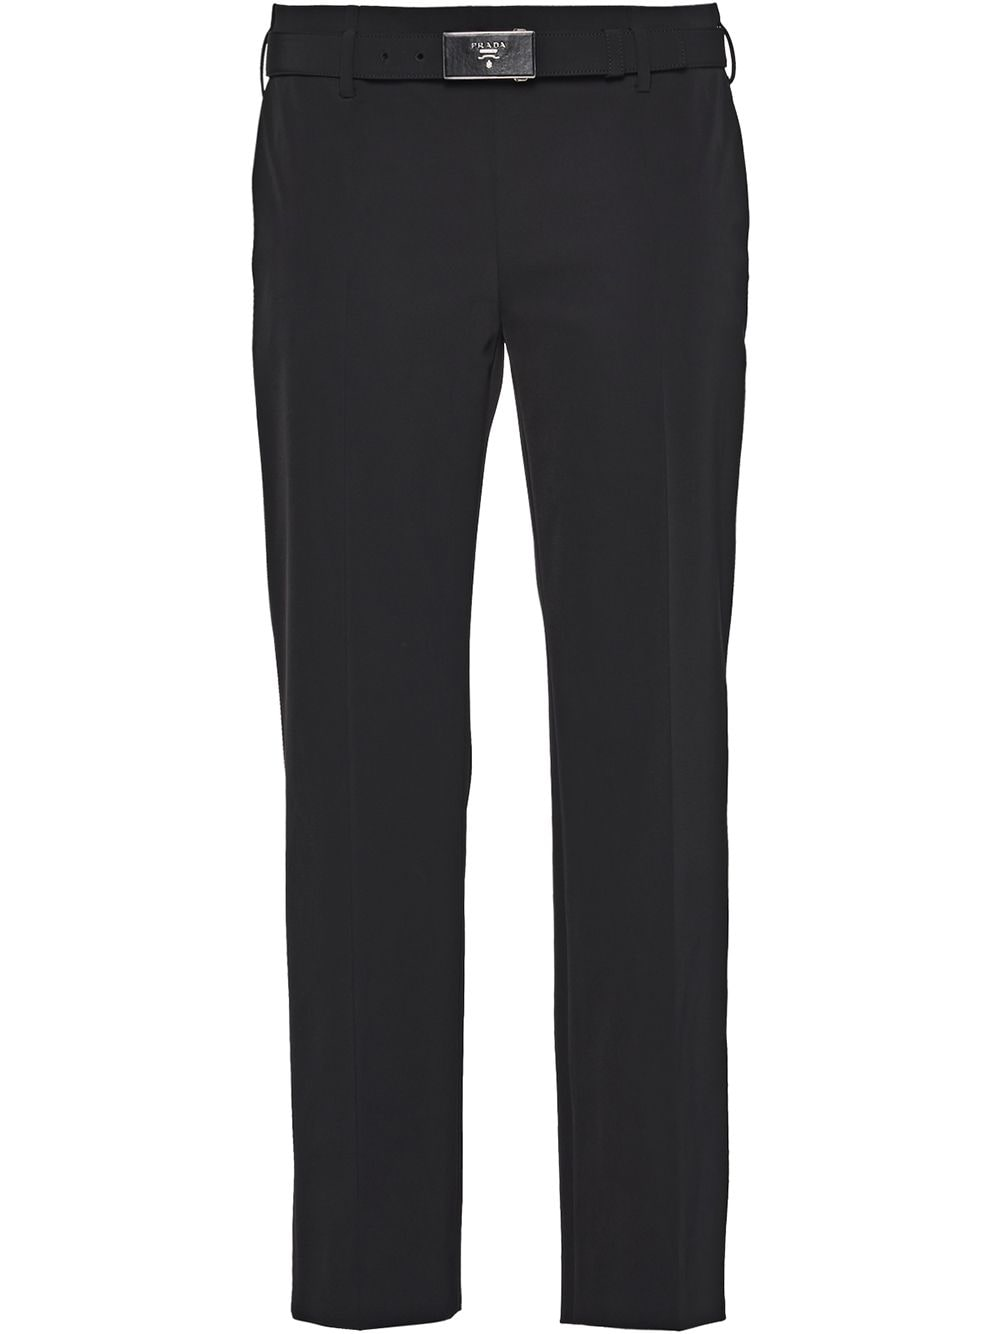 Prada technical fabric trousers - Black von Prada